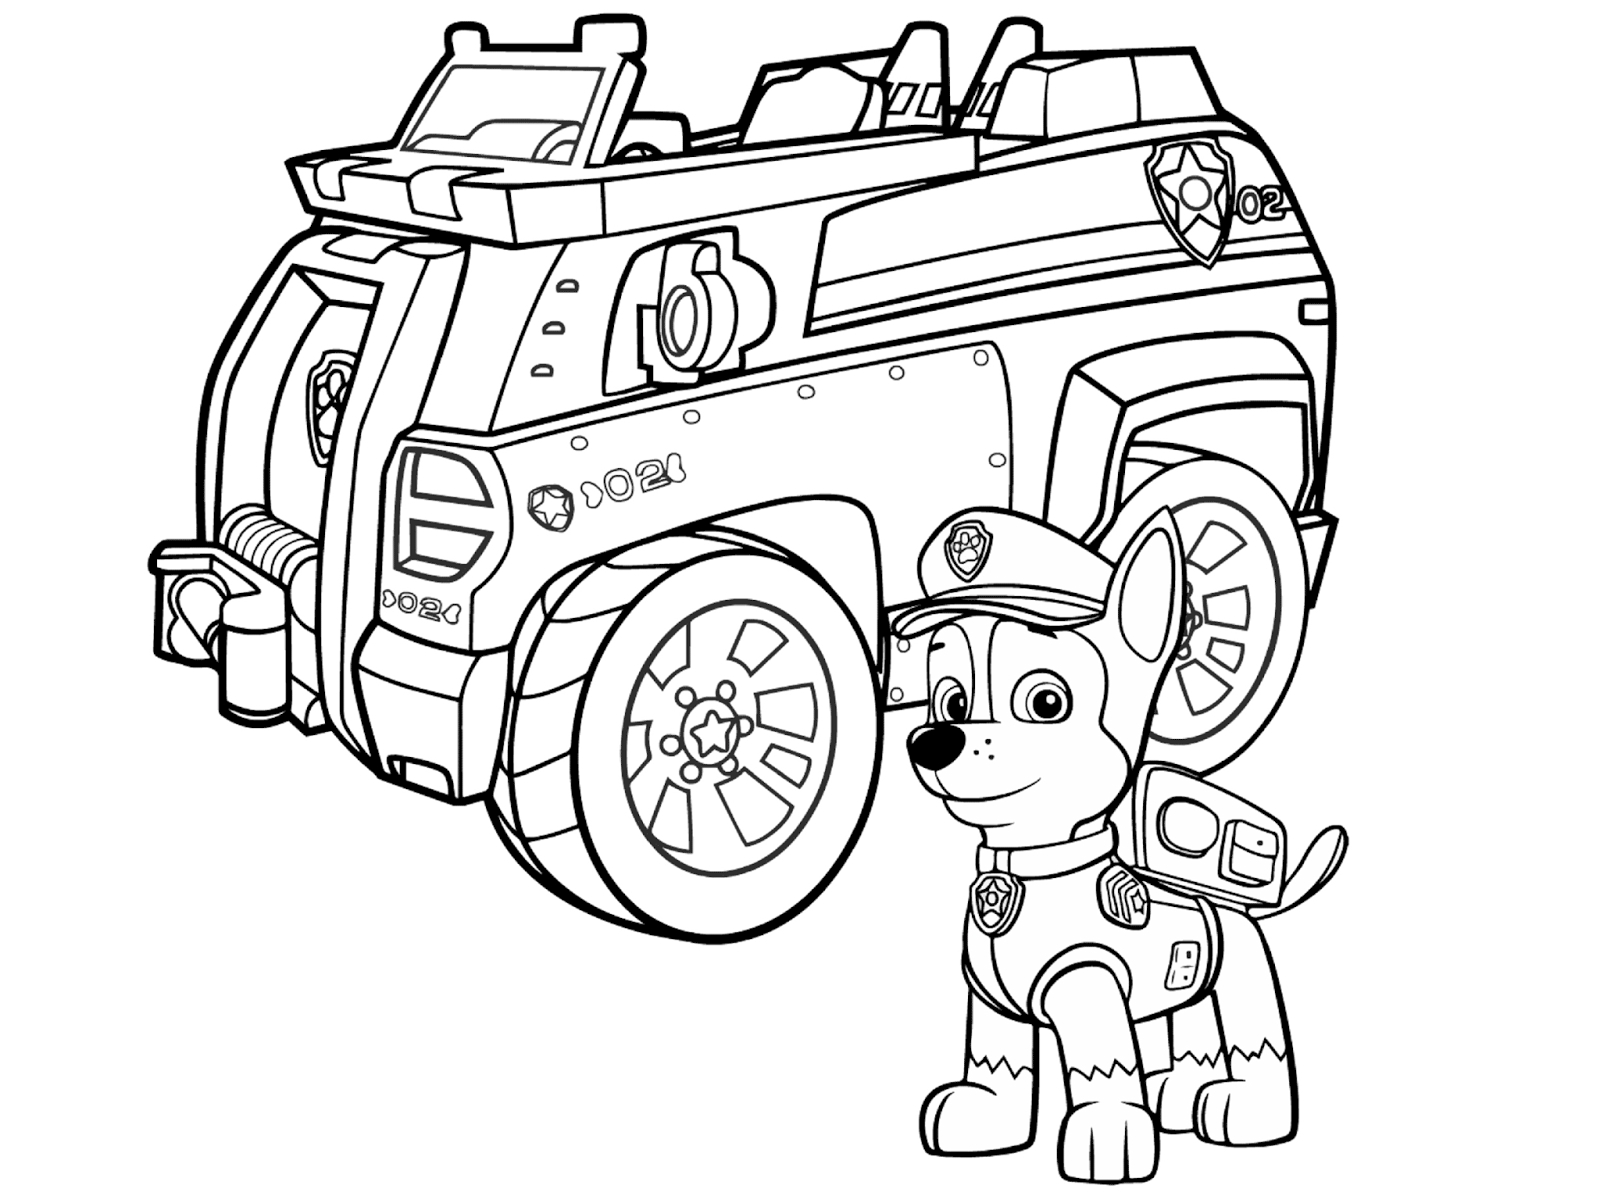 chase coloring page - nickelodeon paw patrol chase coloring pages sketch templates